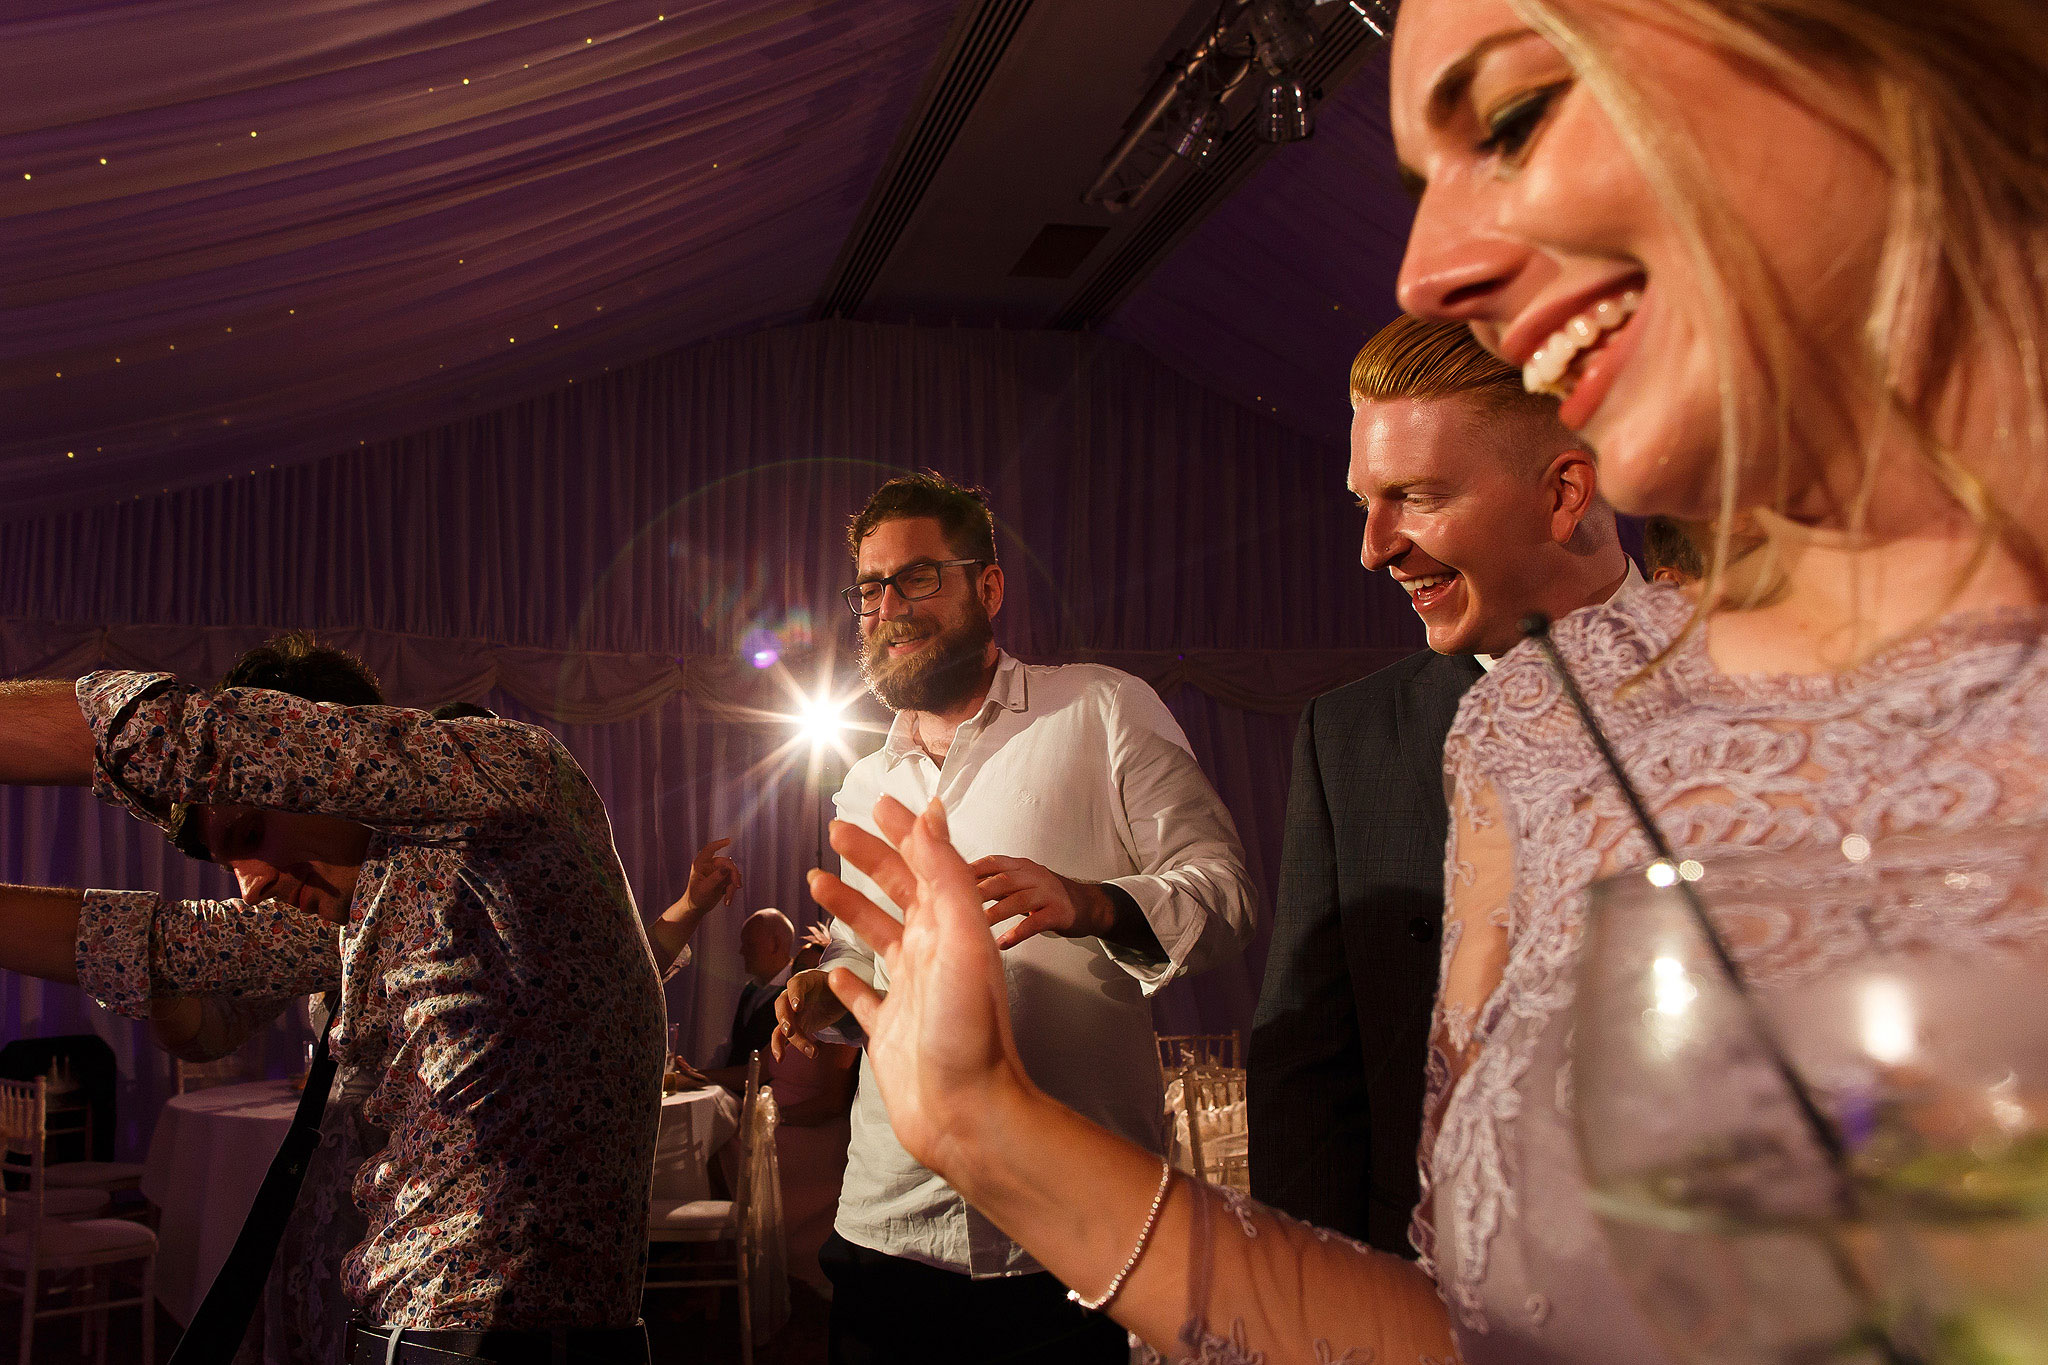 Wedding guests laughing and dancing in the Pavilion - The Villa at Wrea Green Wedding Photography - Toni Darcy Photography